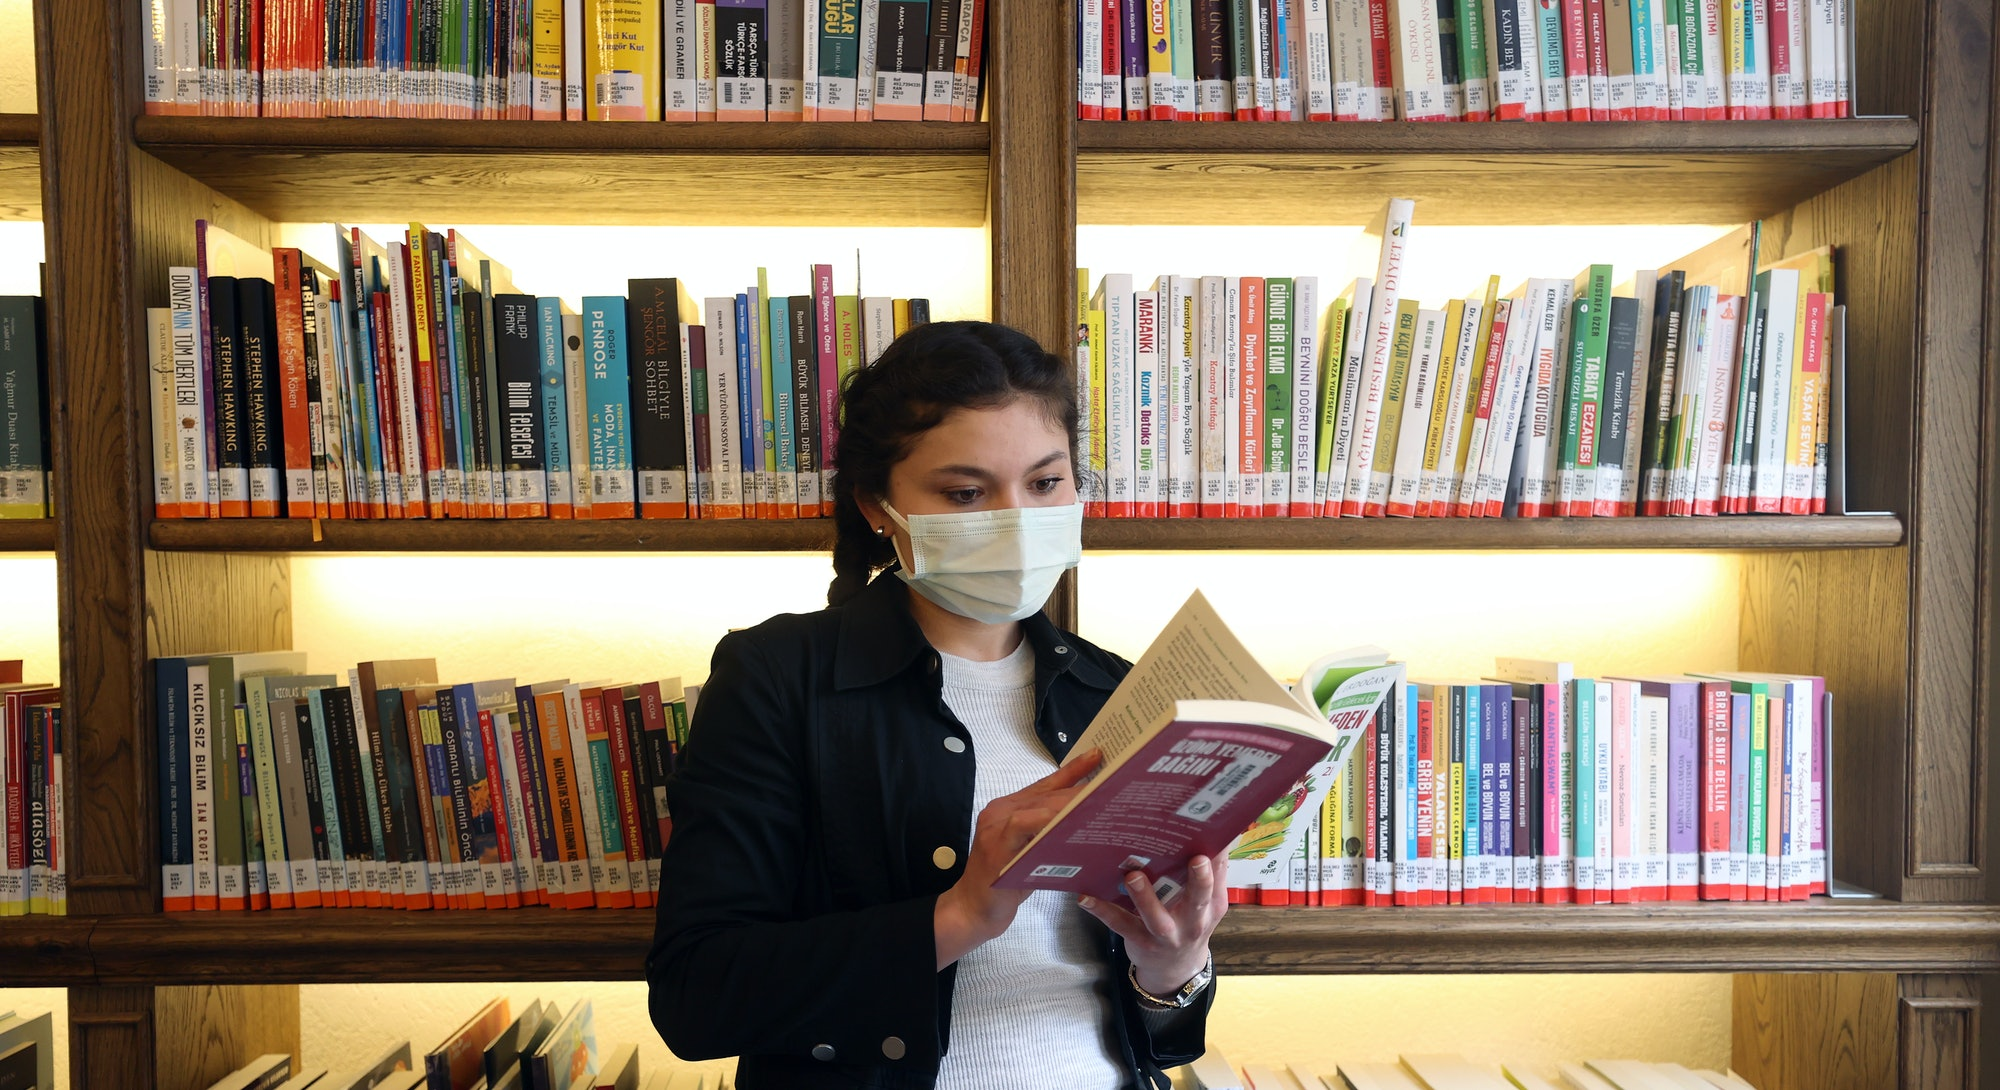 ISTANBUL, TURKEY - APRIL 01: A woman inspects books at Nevmekan Selimiye Library serving within the ...